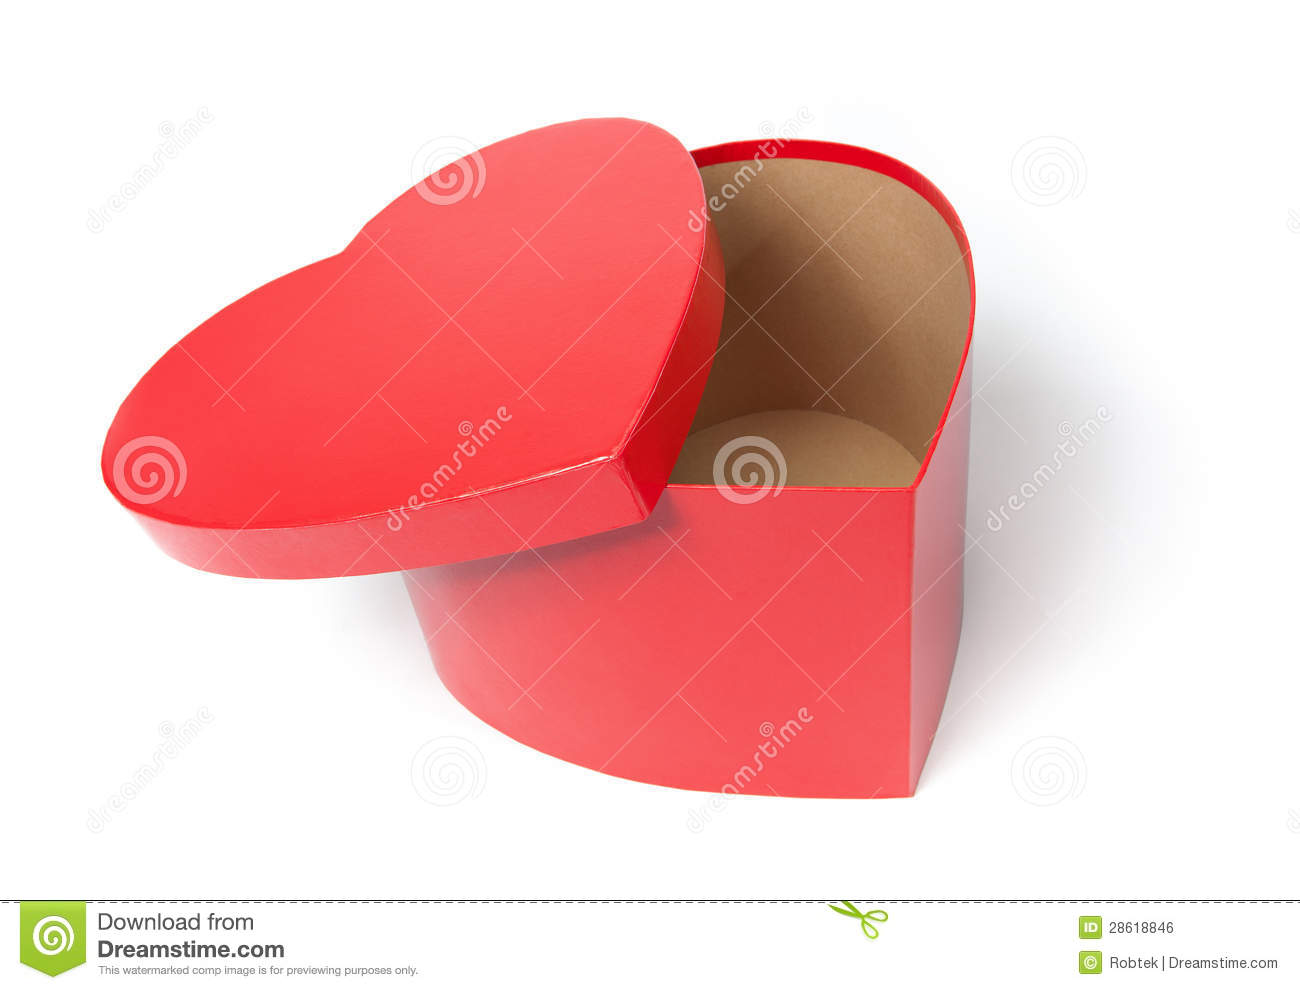 Empty heart shaped box stock photo image of heart cardboard 28618846 empty heart shaped box ccuart